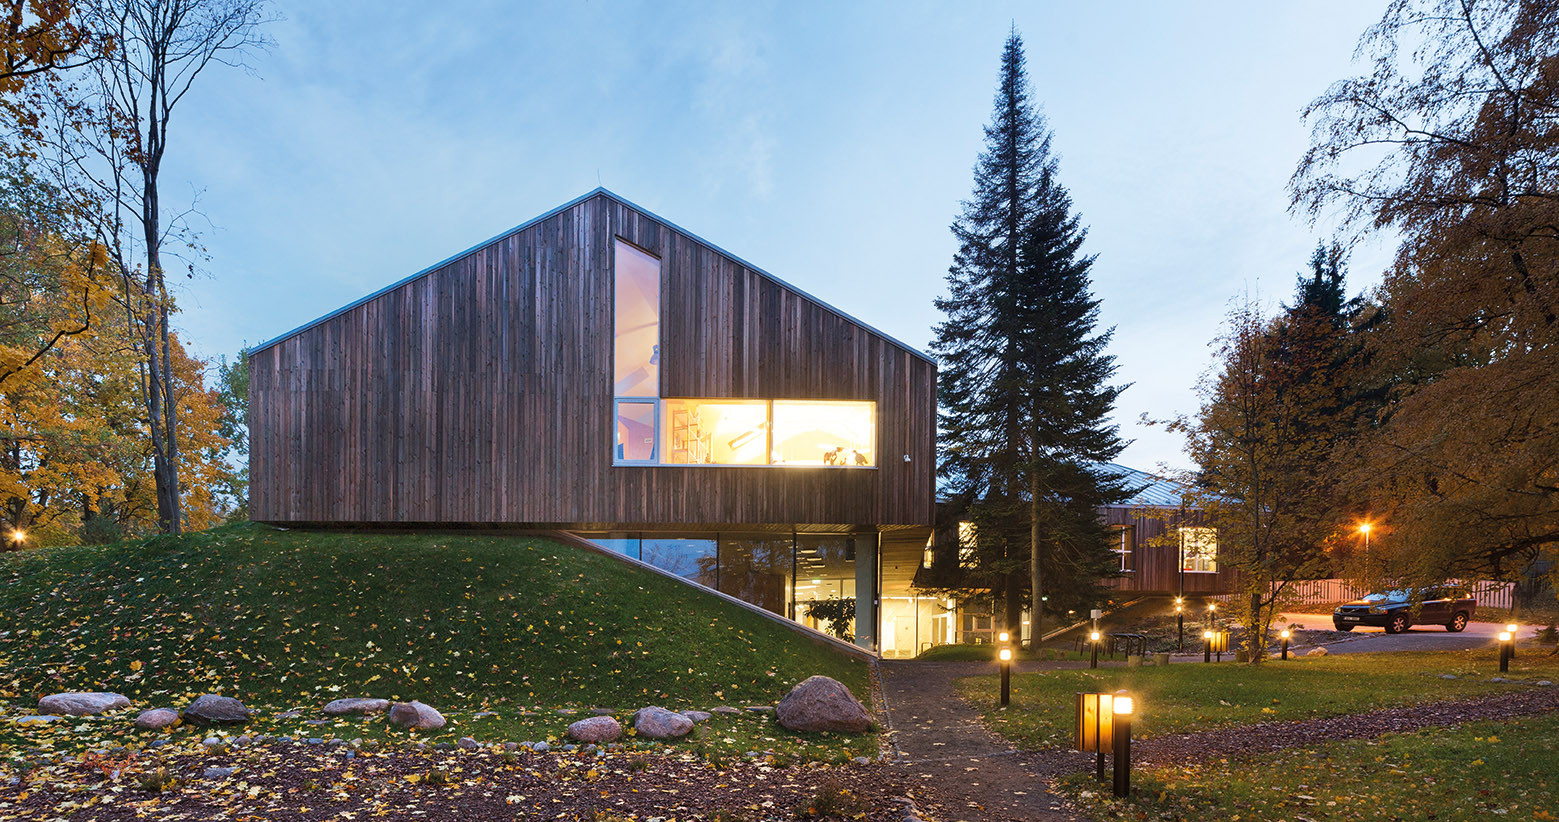 Tartu nature house karisma architects archdaily for In house architect